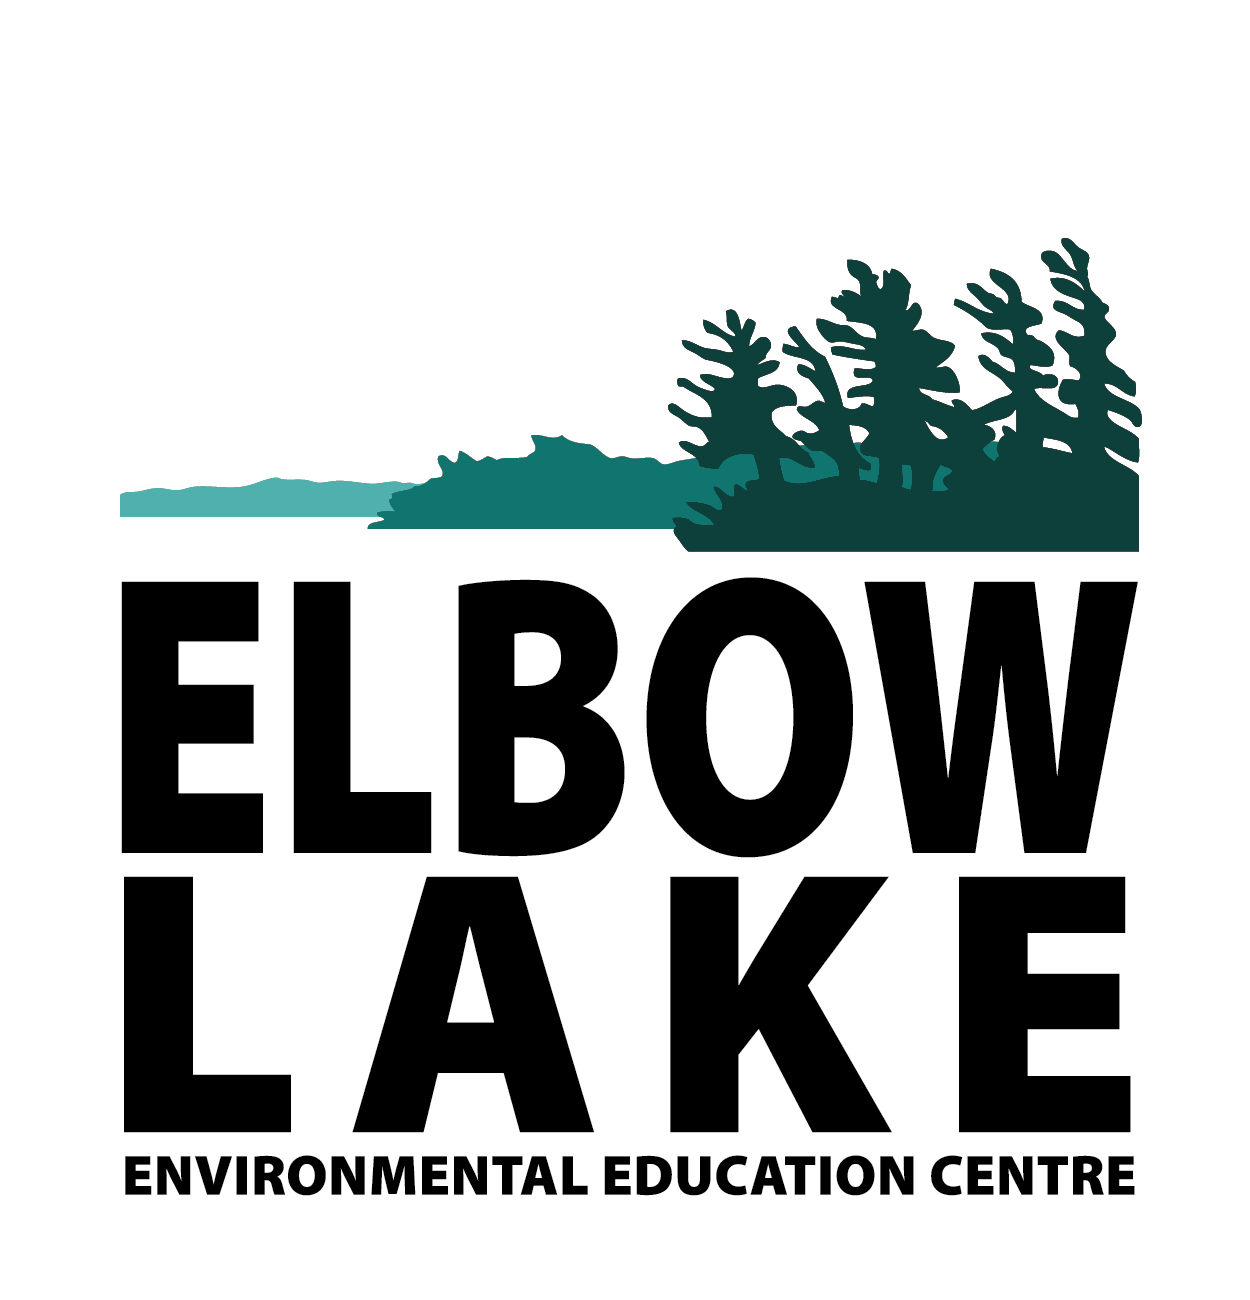 Elbow Lake Environmental Education Centre